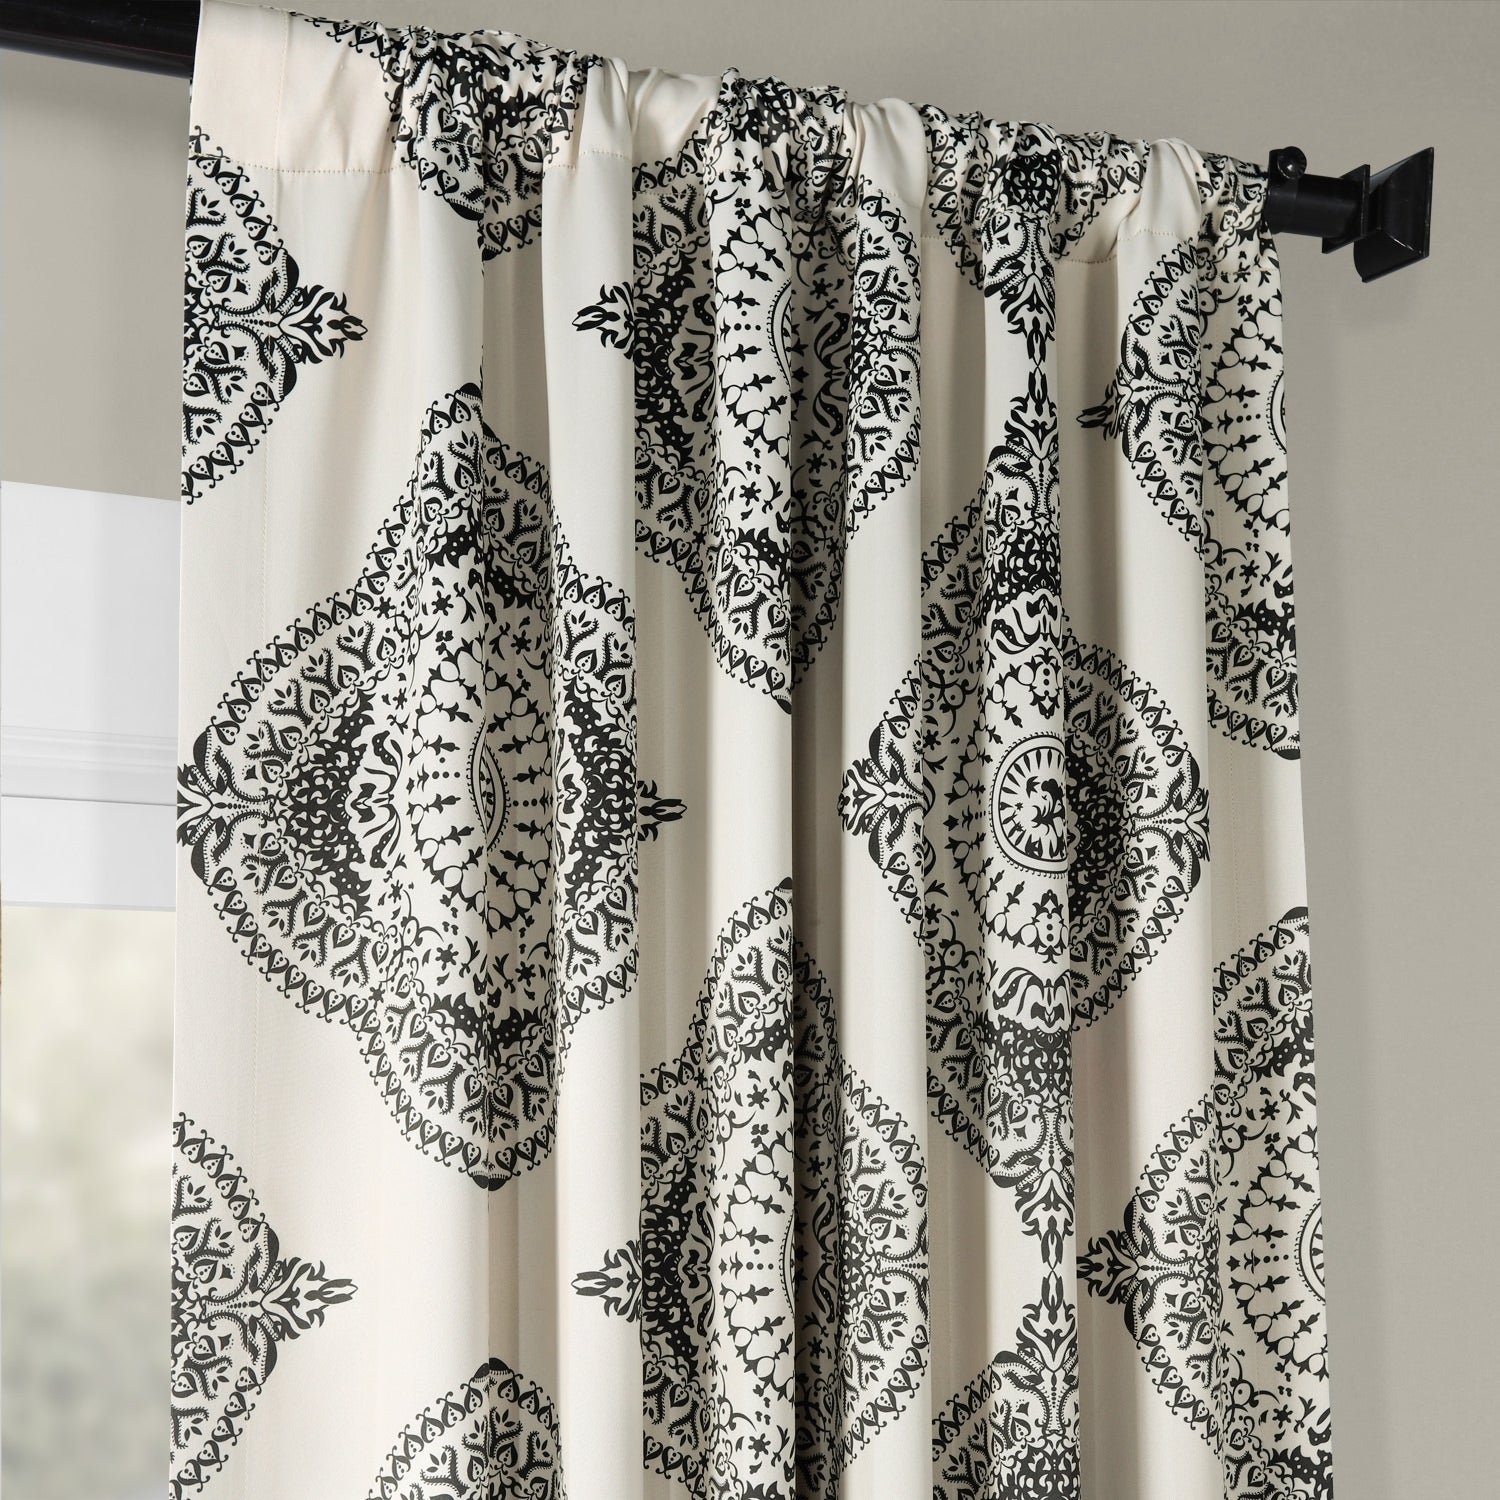 Shop Moroccan Style Thermal Insulated Blackout Curtain Panel Intended For Moroccan Style Thermal Insulated Blackout Curtain Panel Pairs (View 3 of 20)